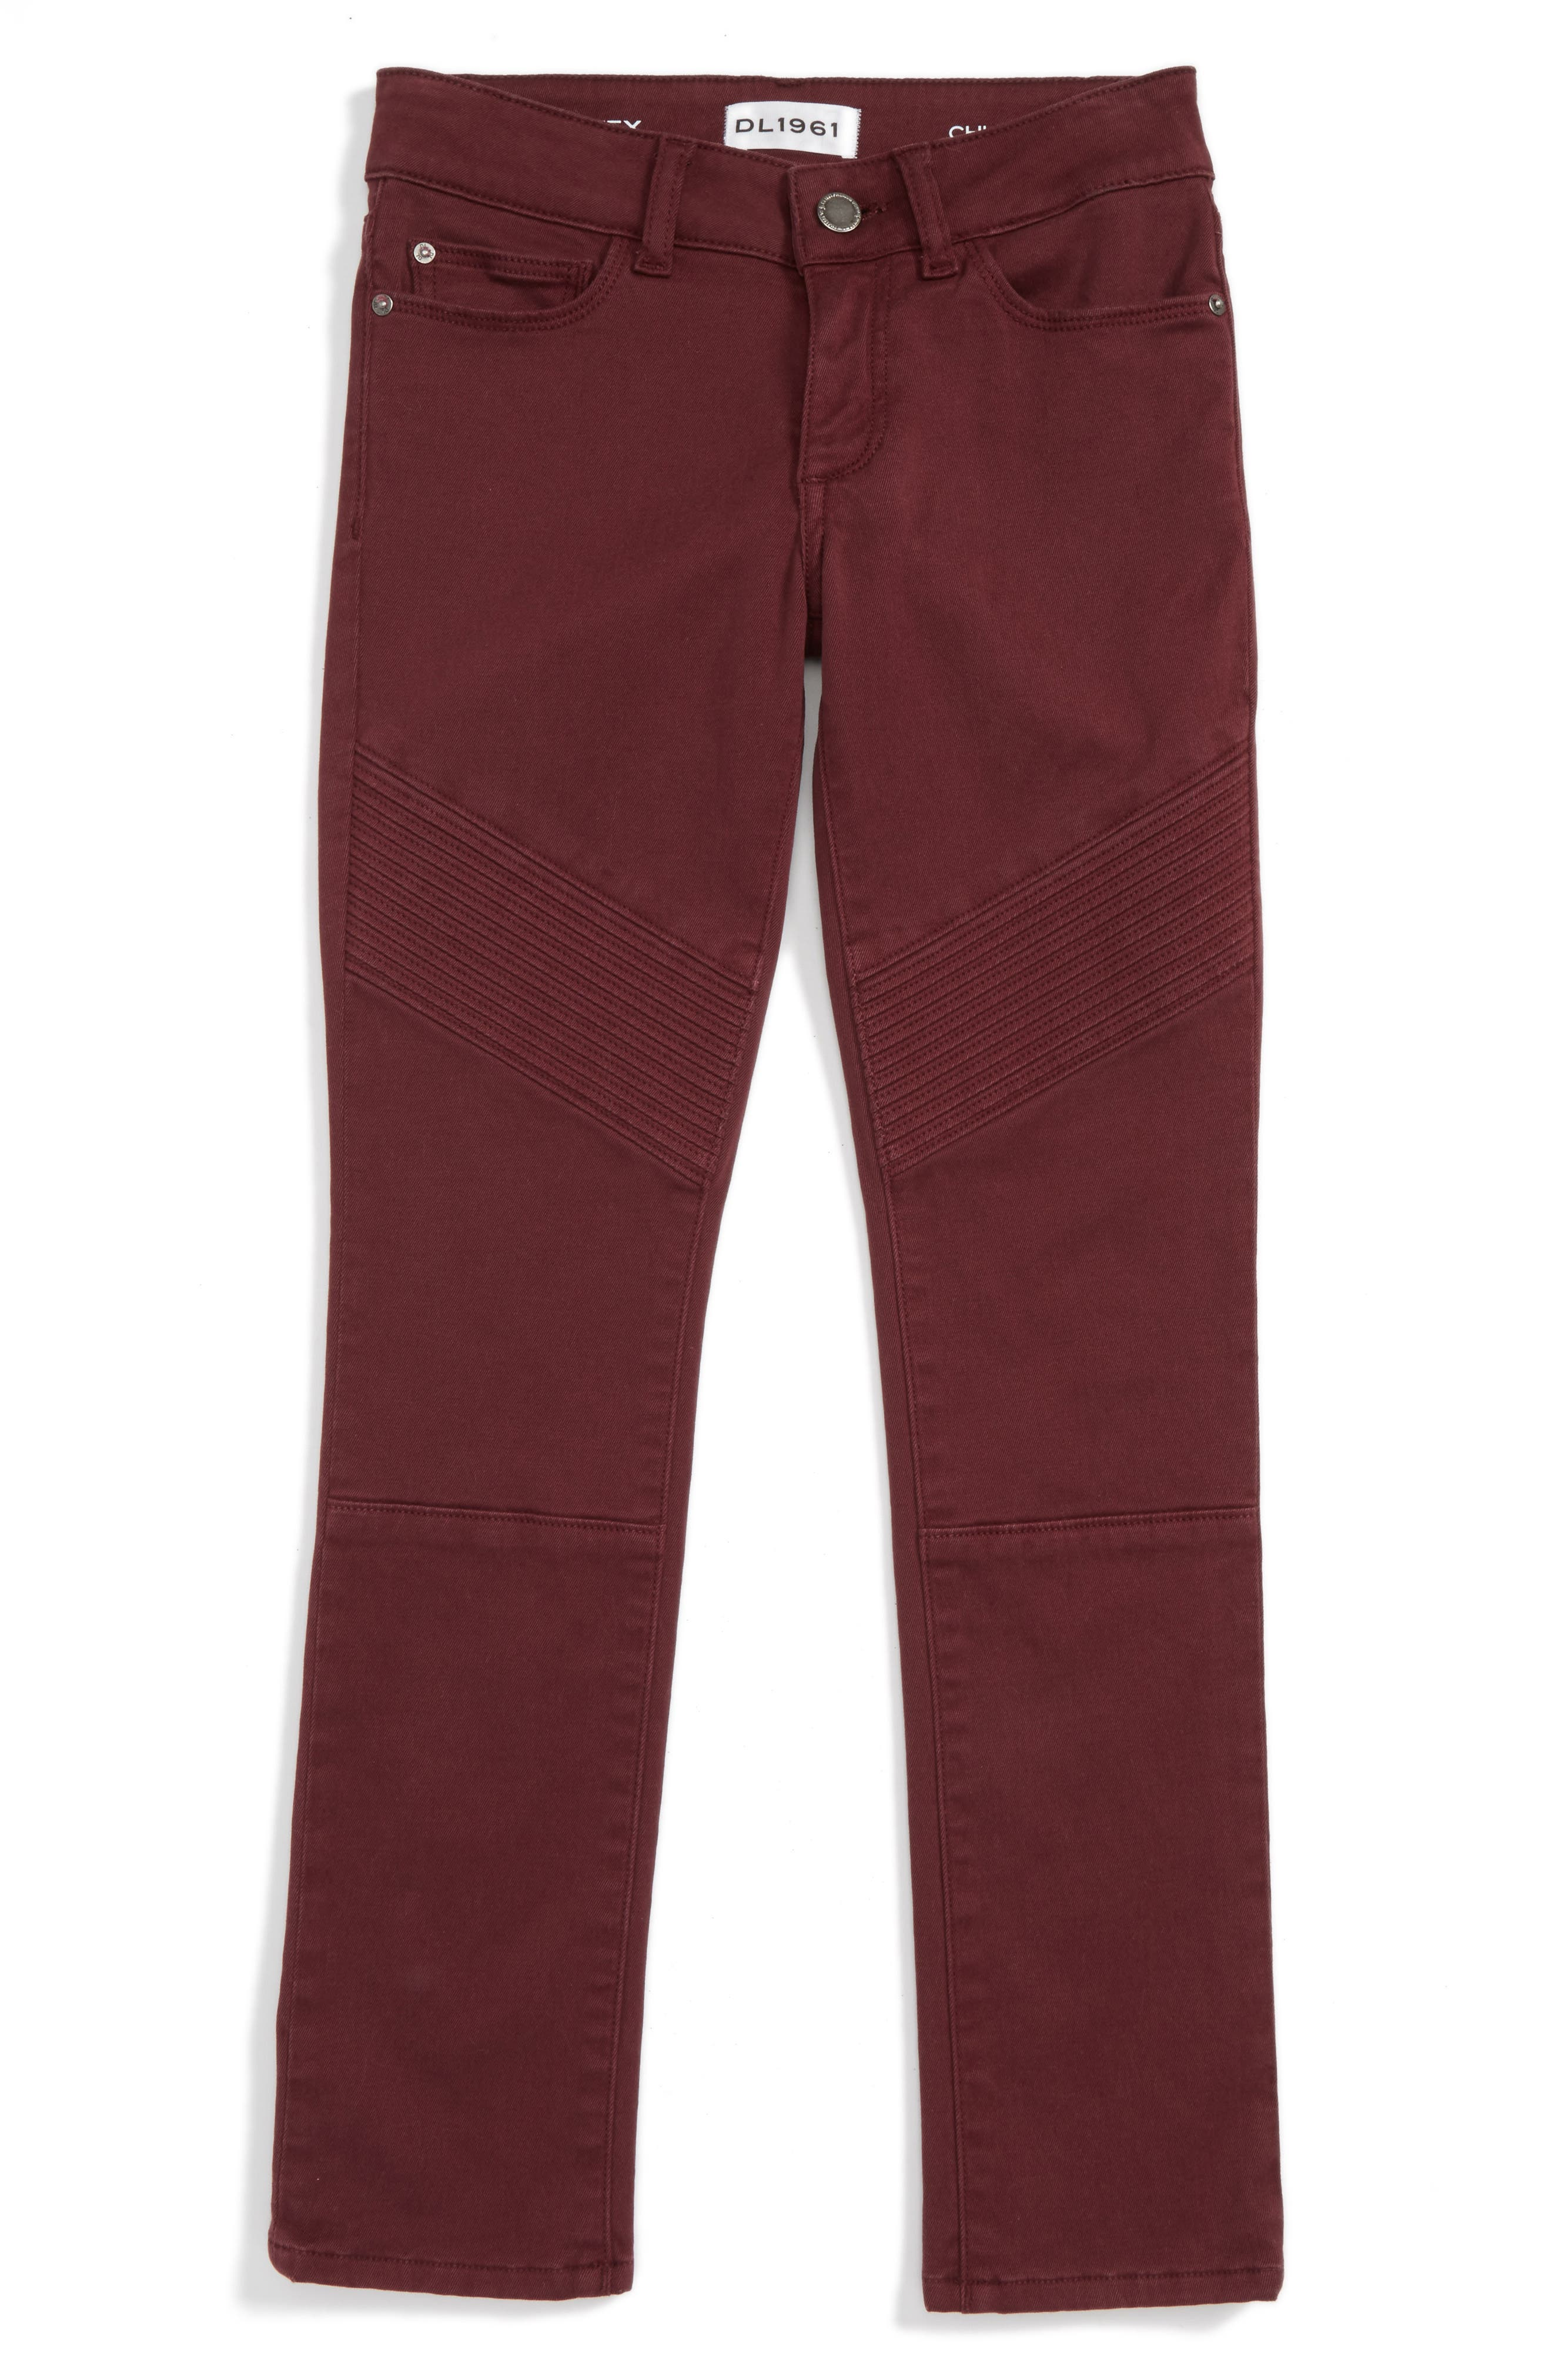 DL1961 Moto Skinny Jeans (Big Girls)